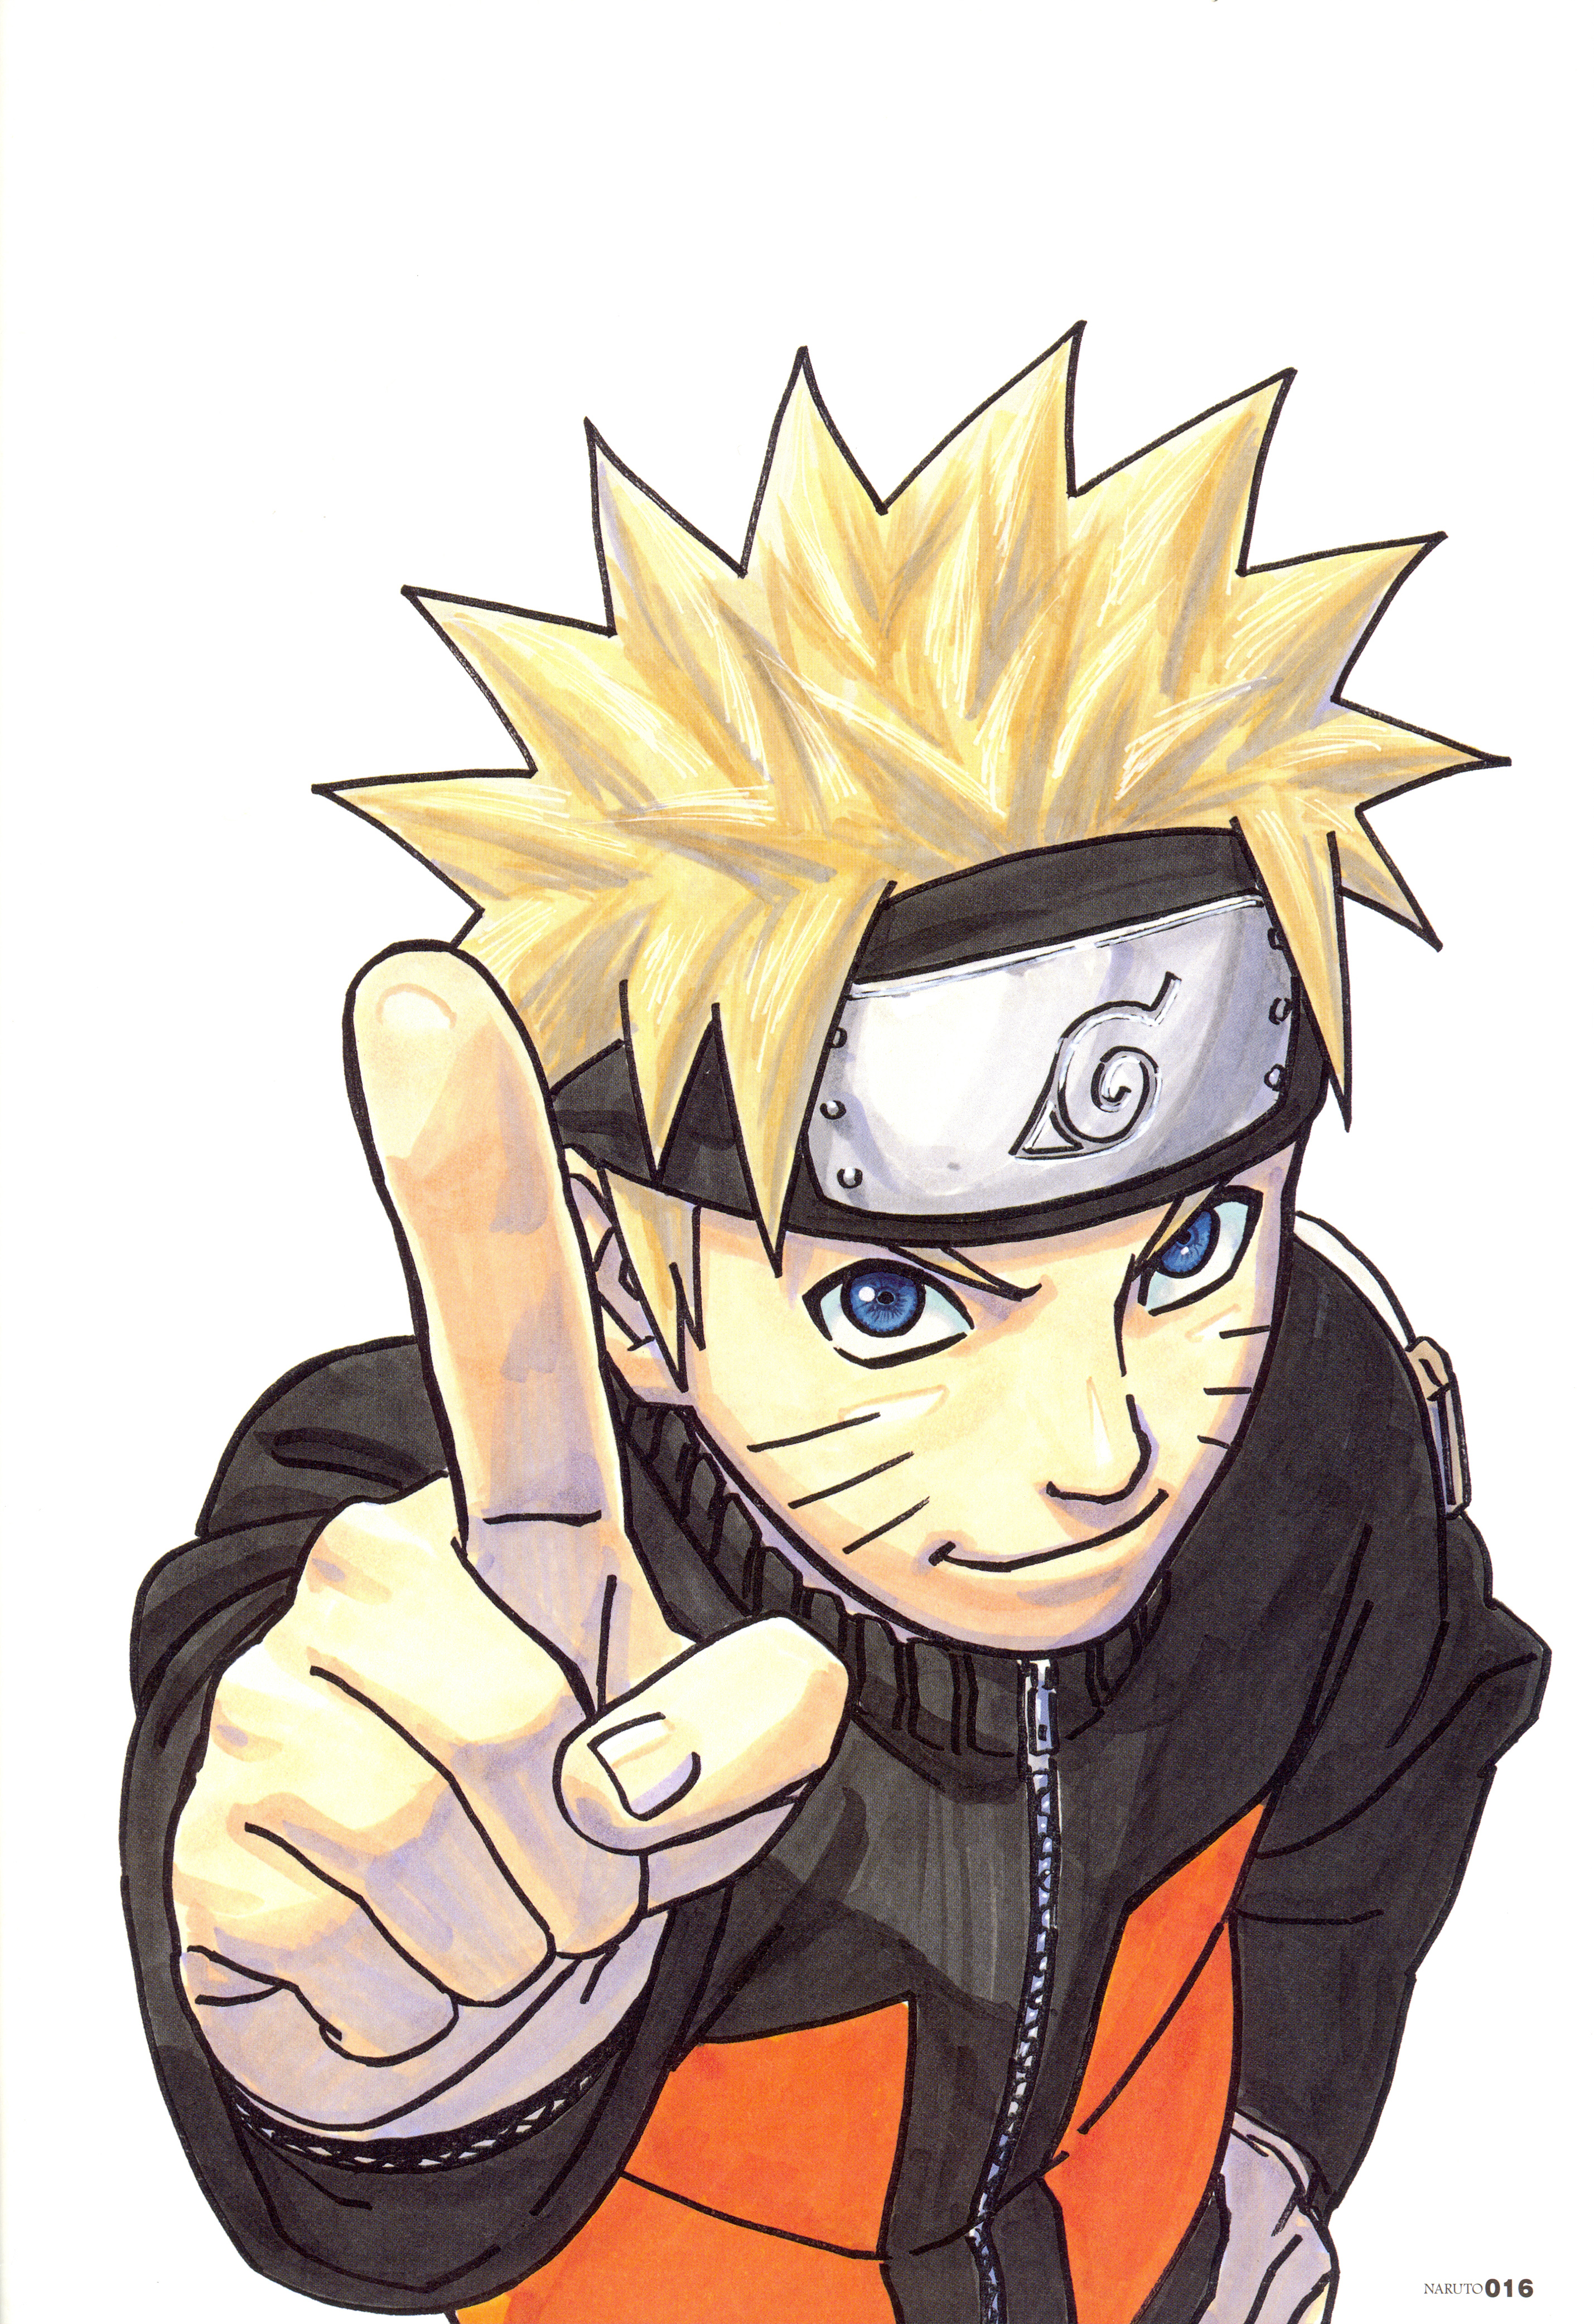 Naruto Holds Finger Up to Make a Point